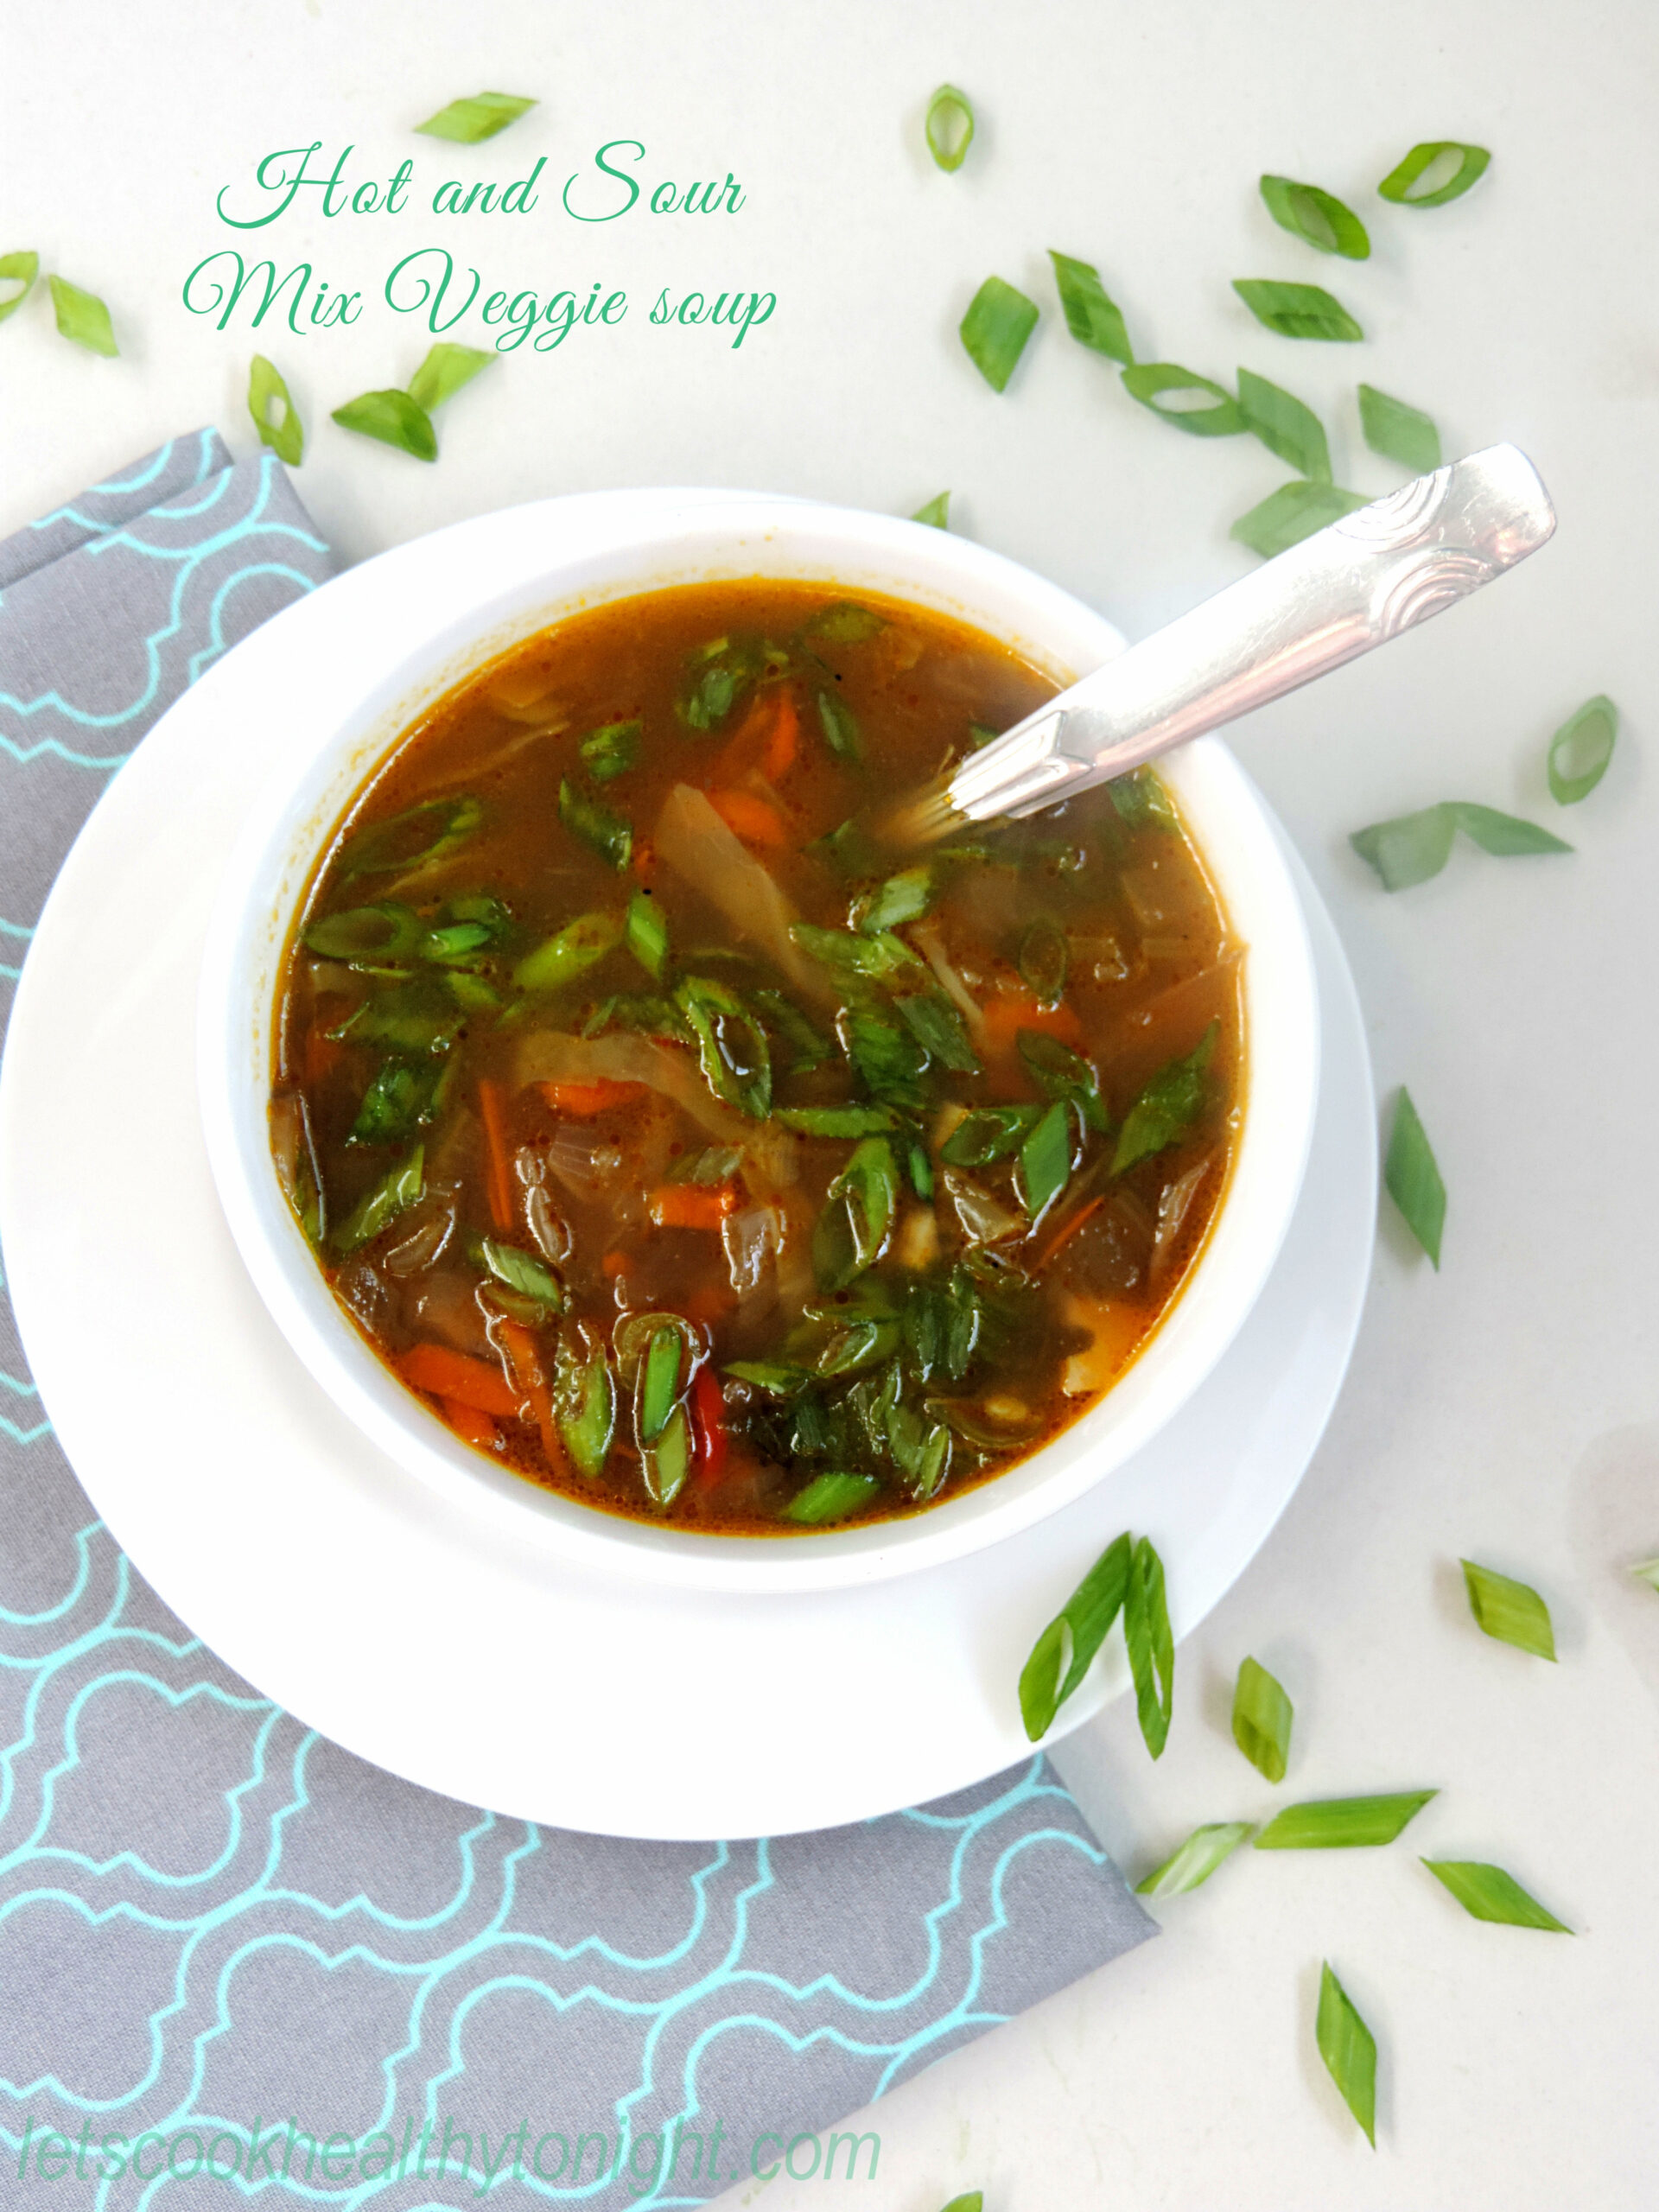 Hot and Sour Mix veggie Soup - Lets Cook Healthy Tonight - recipe vegetarian hot and sour soup